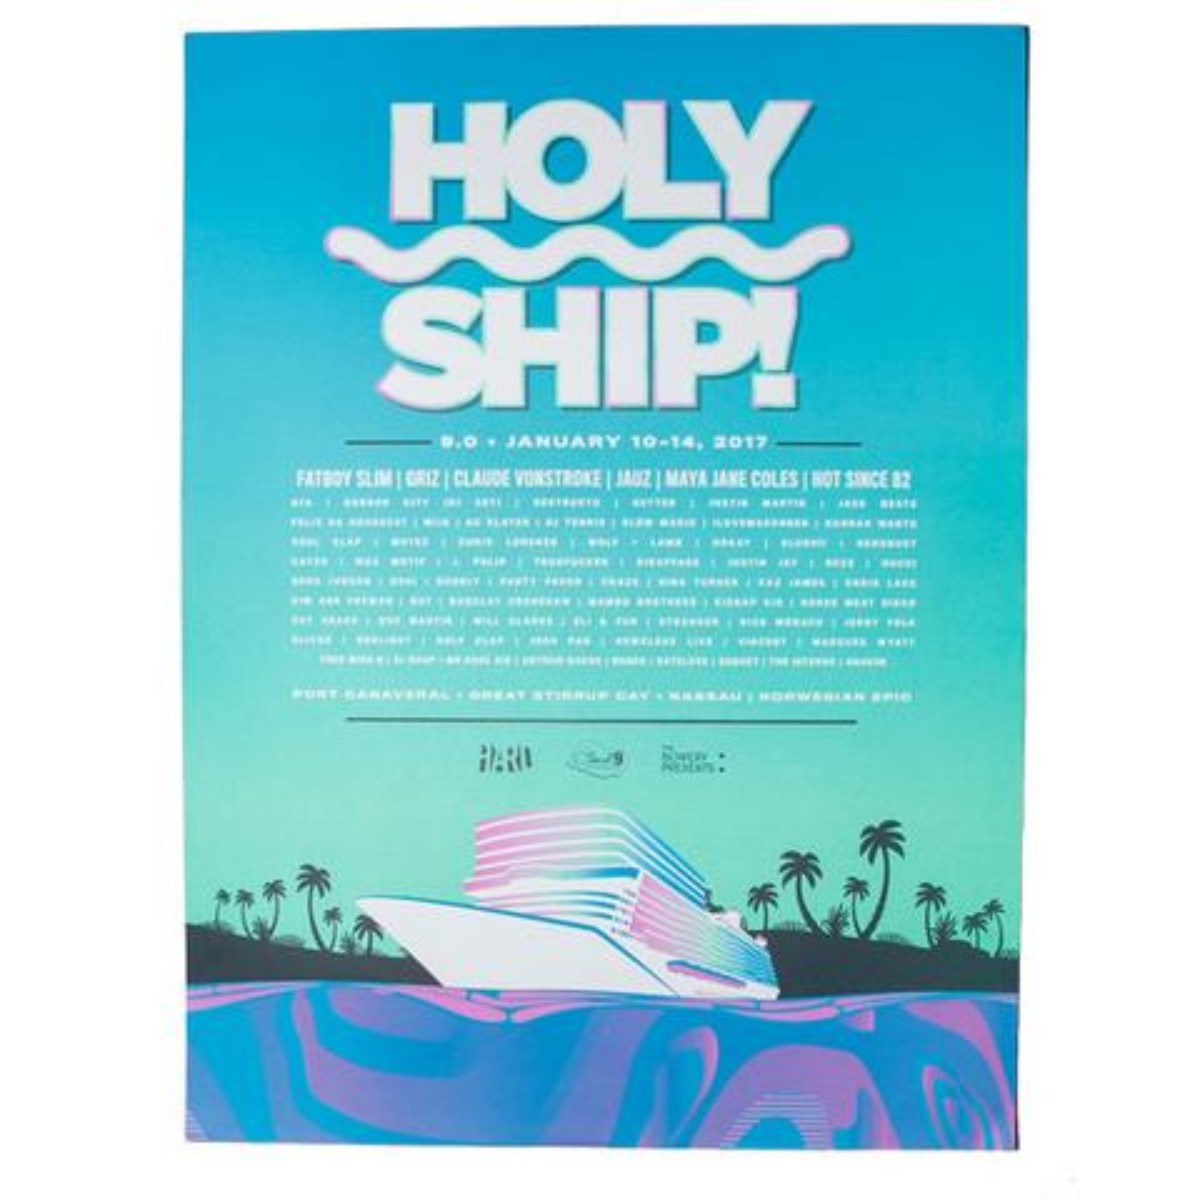 Holy Ship! 2017 9.0 Poster